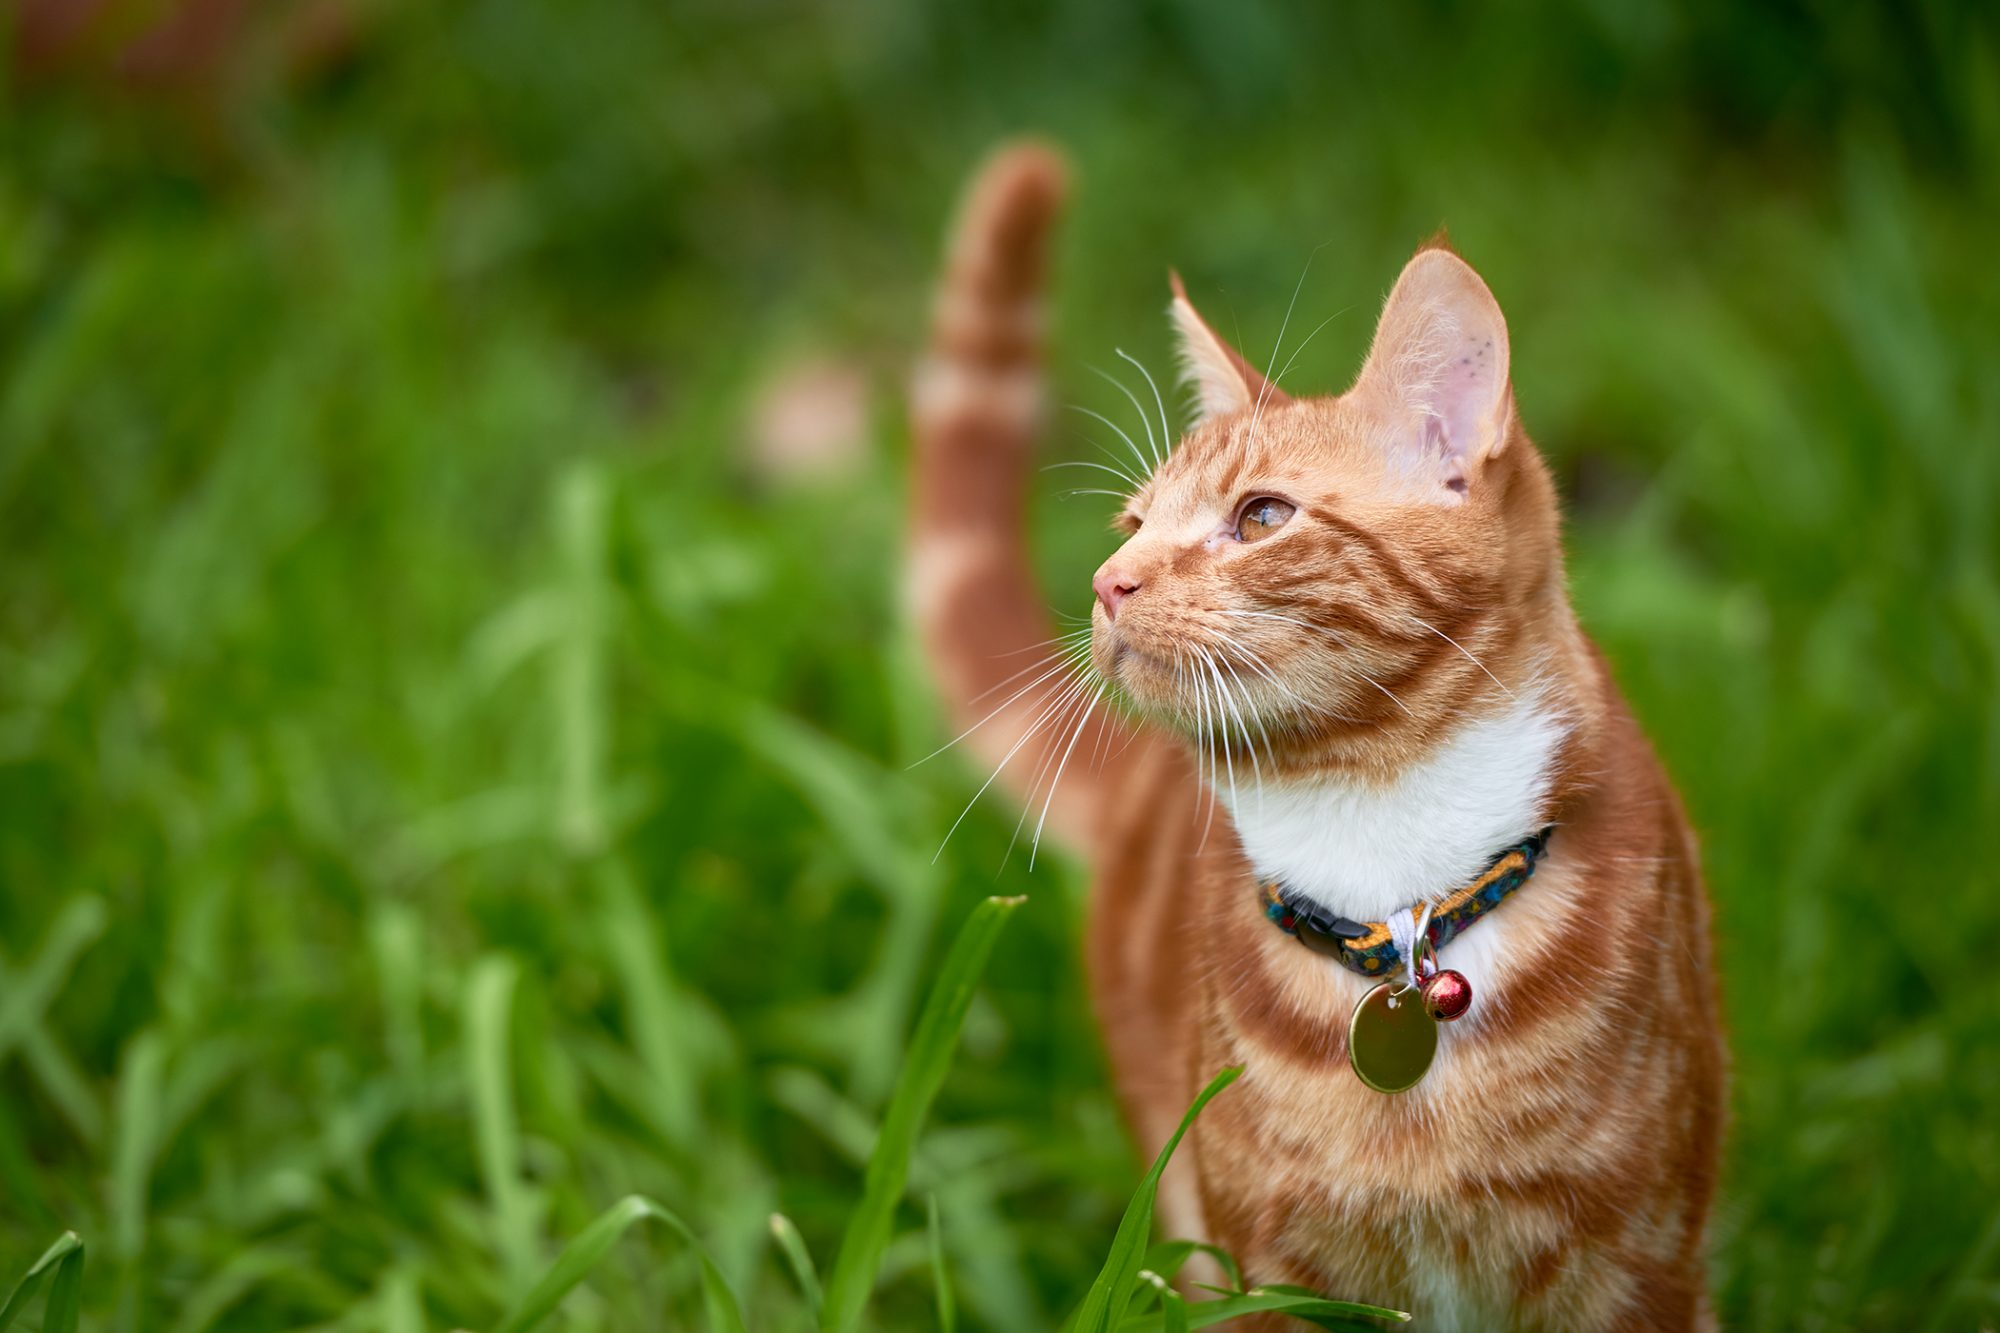 Orange tabby cat stands in long grass